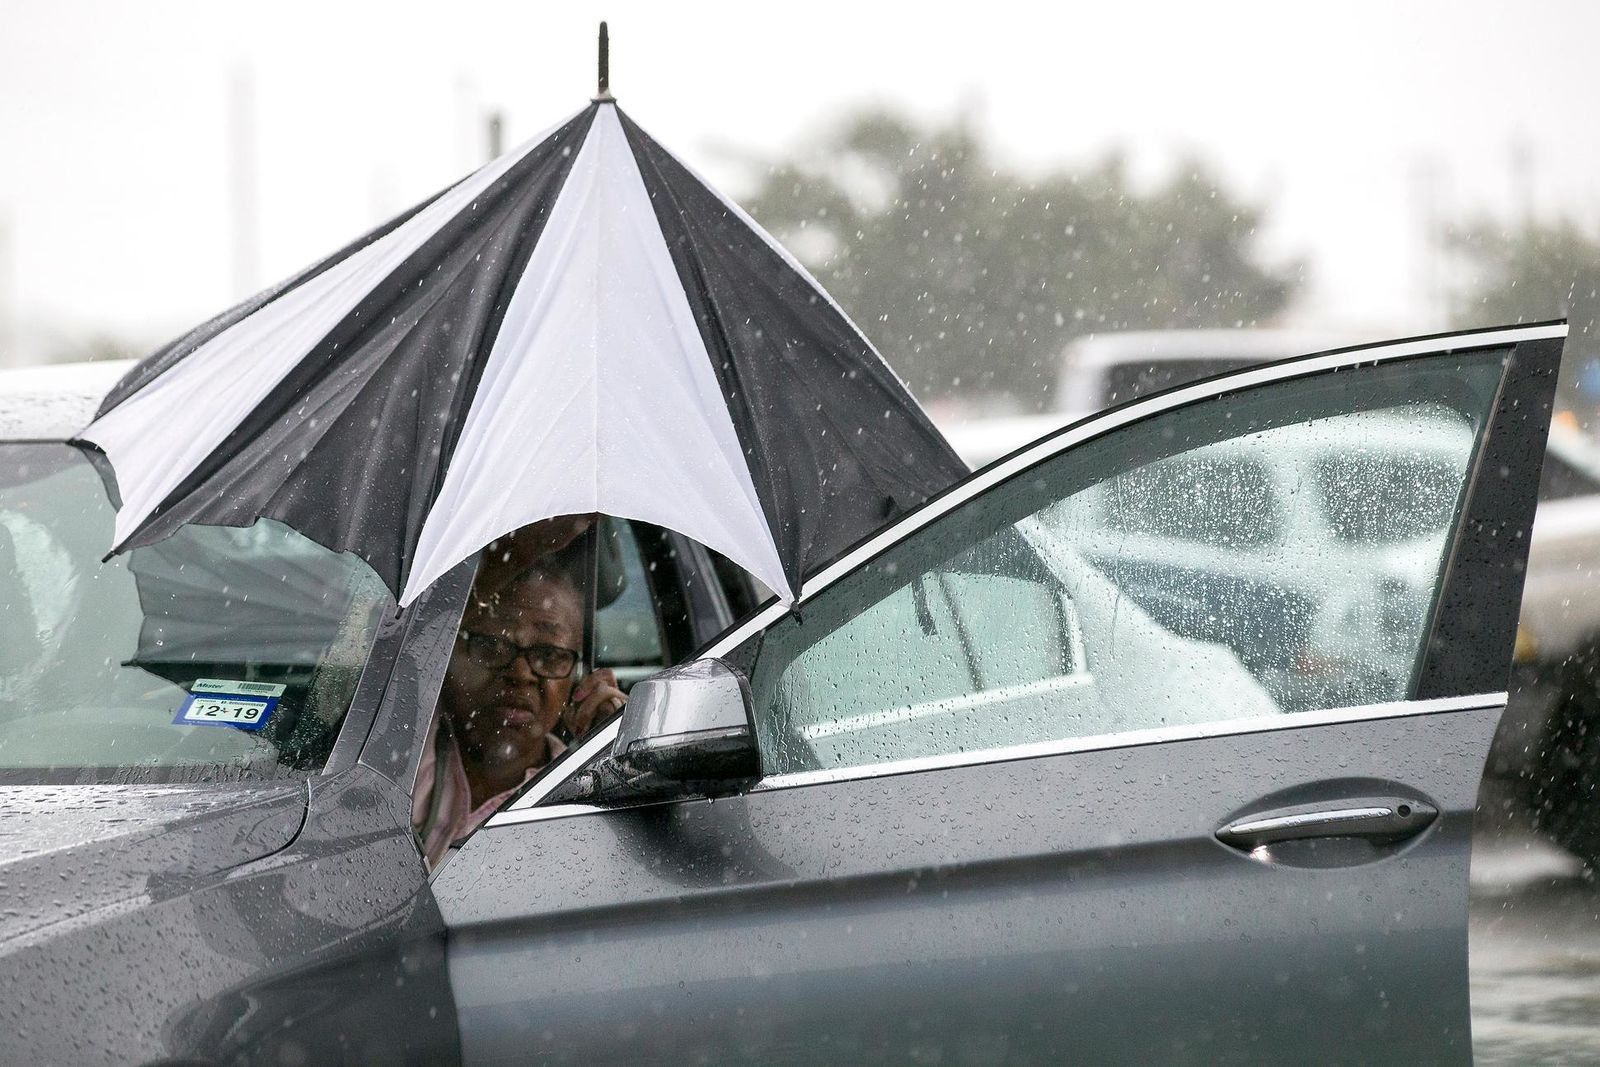 A woman closes her umbrella after getting into her car during a rain storm stemming from rain bands spawned by Tropical Storm Imelda near I-45 and Almeda-Genoa on Tuesday, Sept. 17, 2019, in Houston. (Brett Coomer/Houston Chronicle via AP)/Houston Chronicle via AP